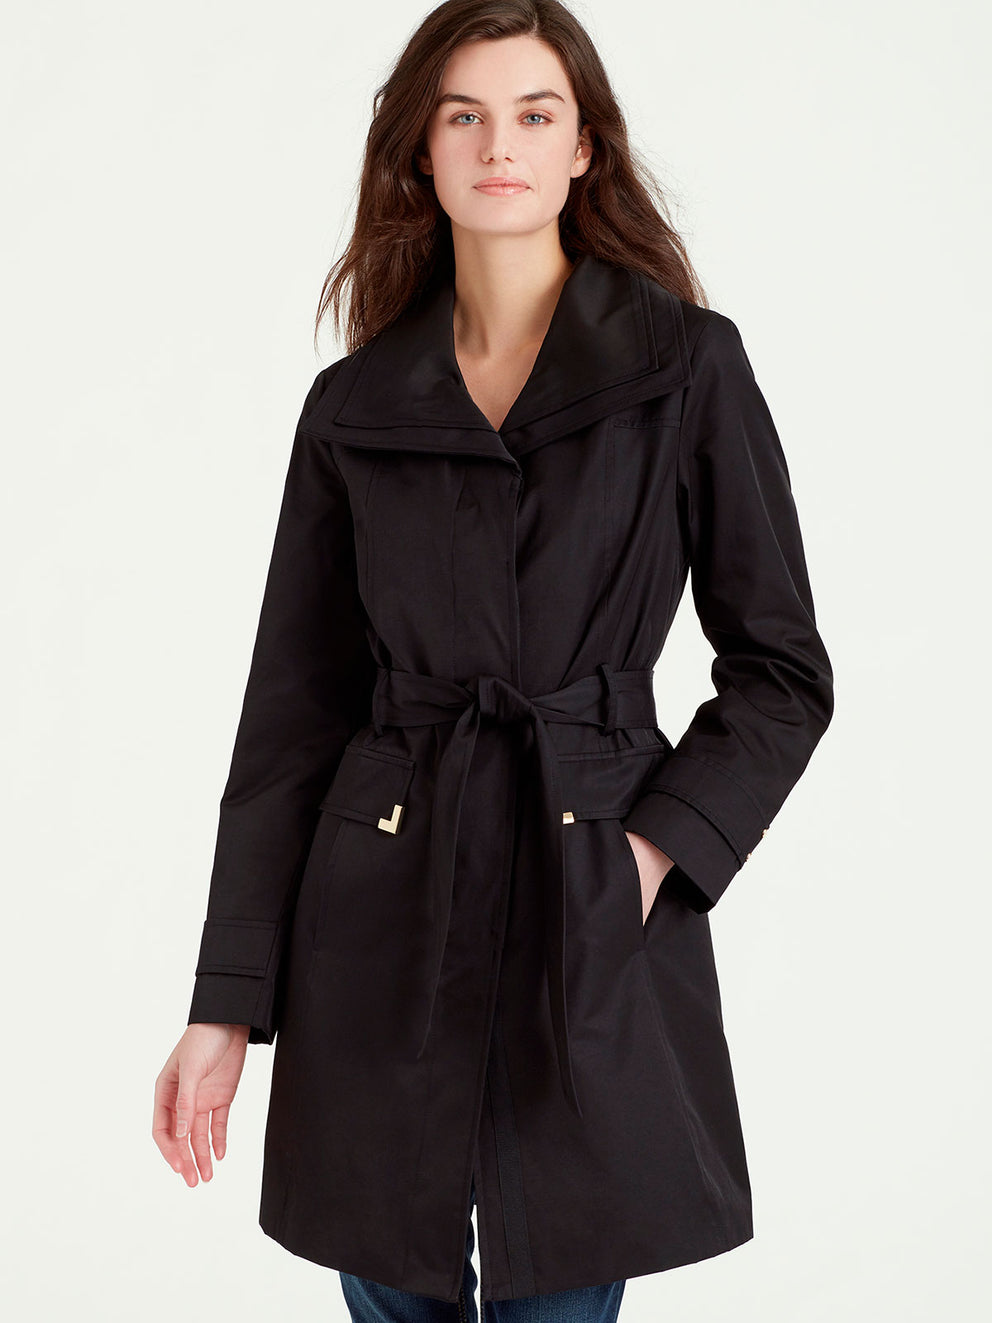 The Jones New York Double Collar Rain Trench in color Black - Image Position 2